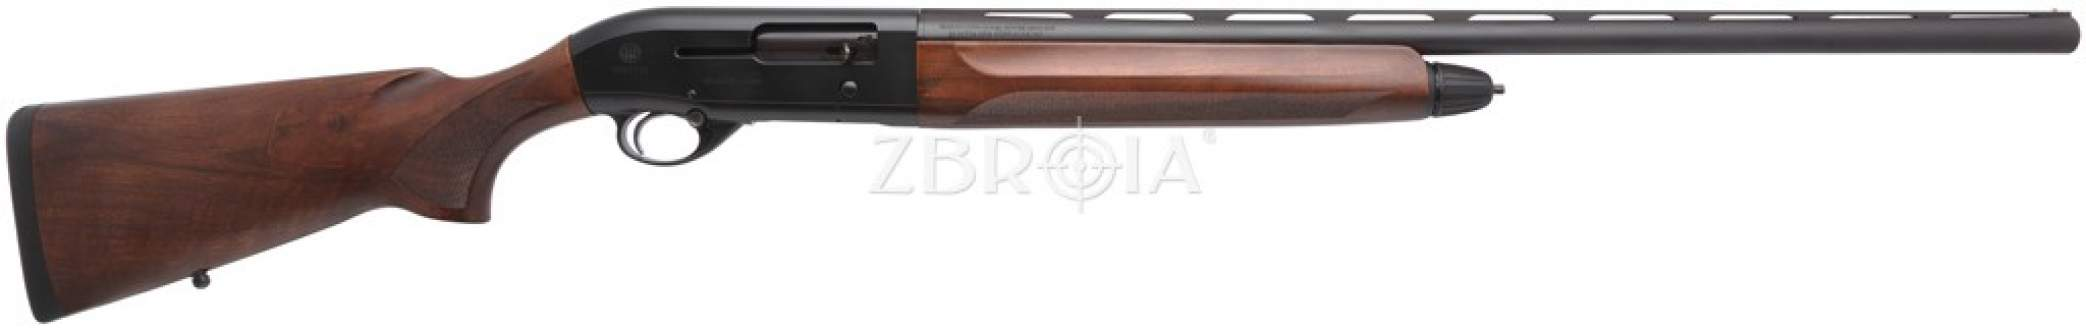 Ружье Beretta A300 Outlander Wood кал. 12/76